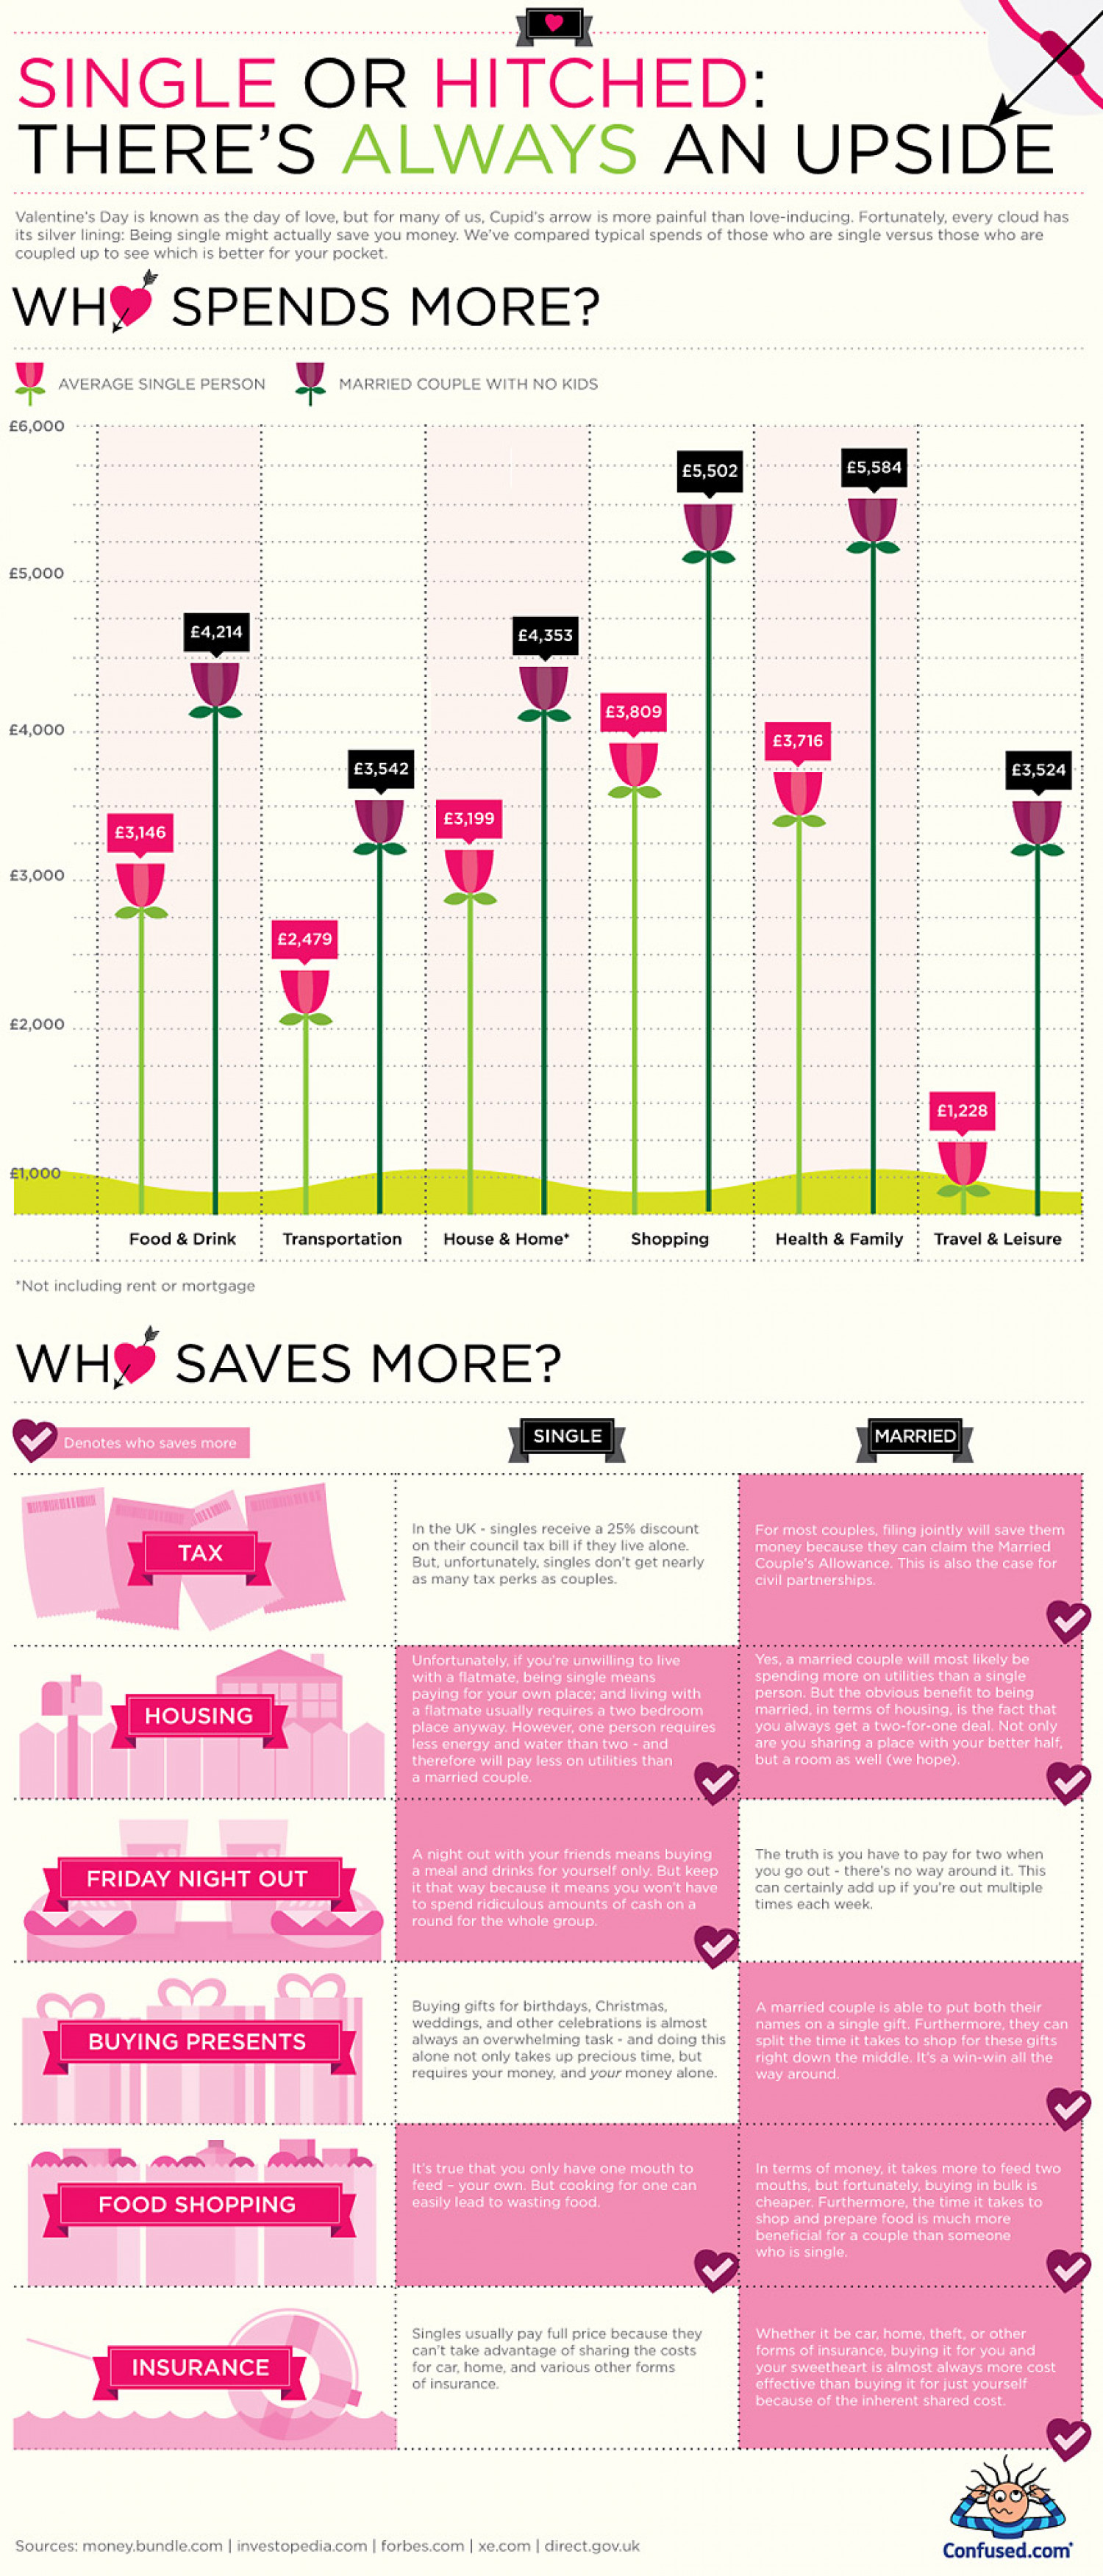 Single or hitched: There's always an upside Infographic